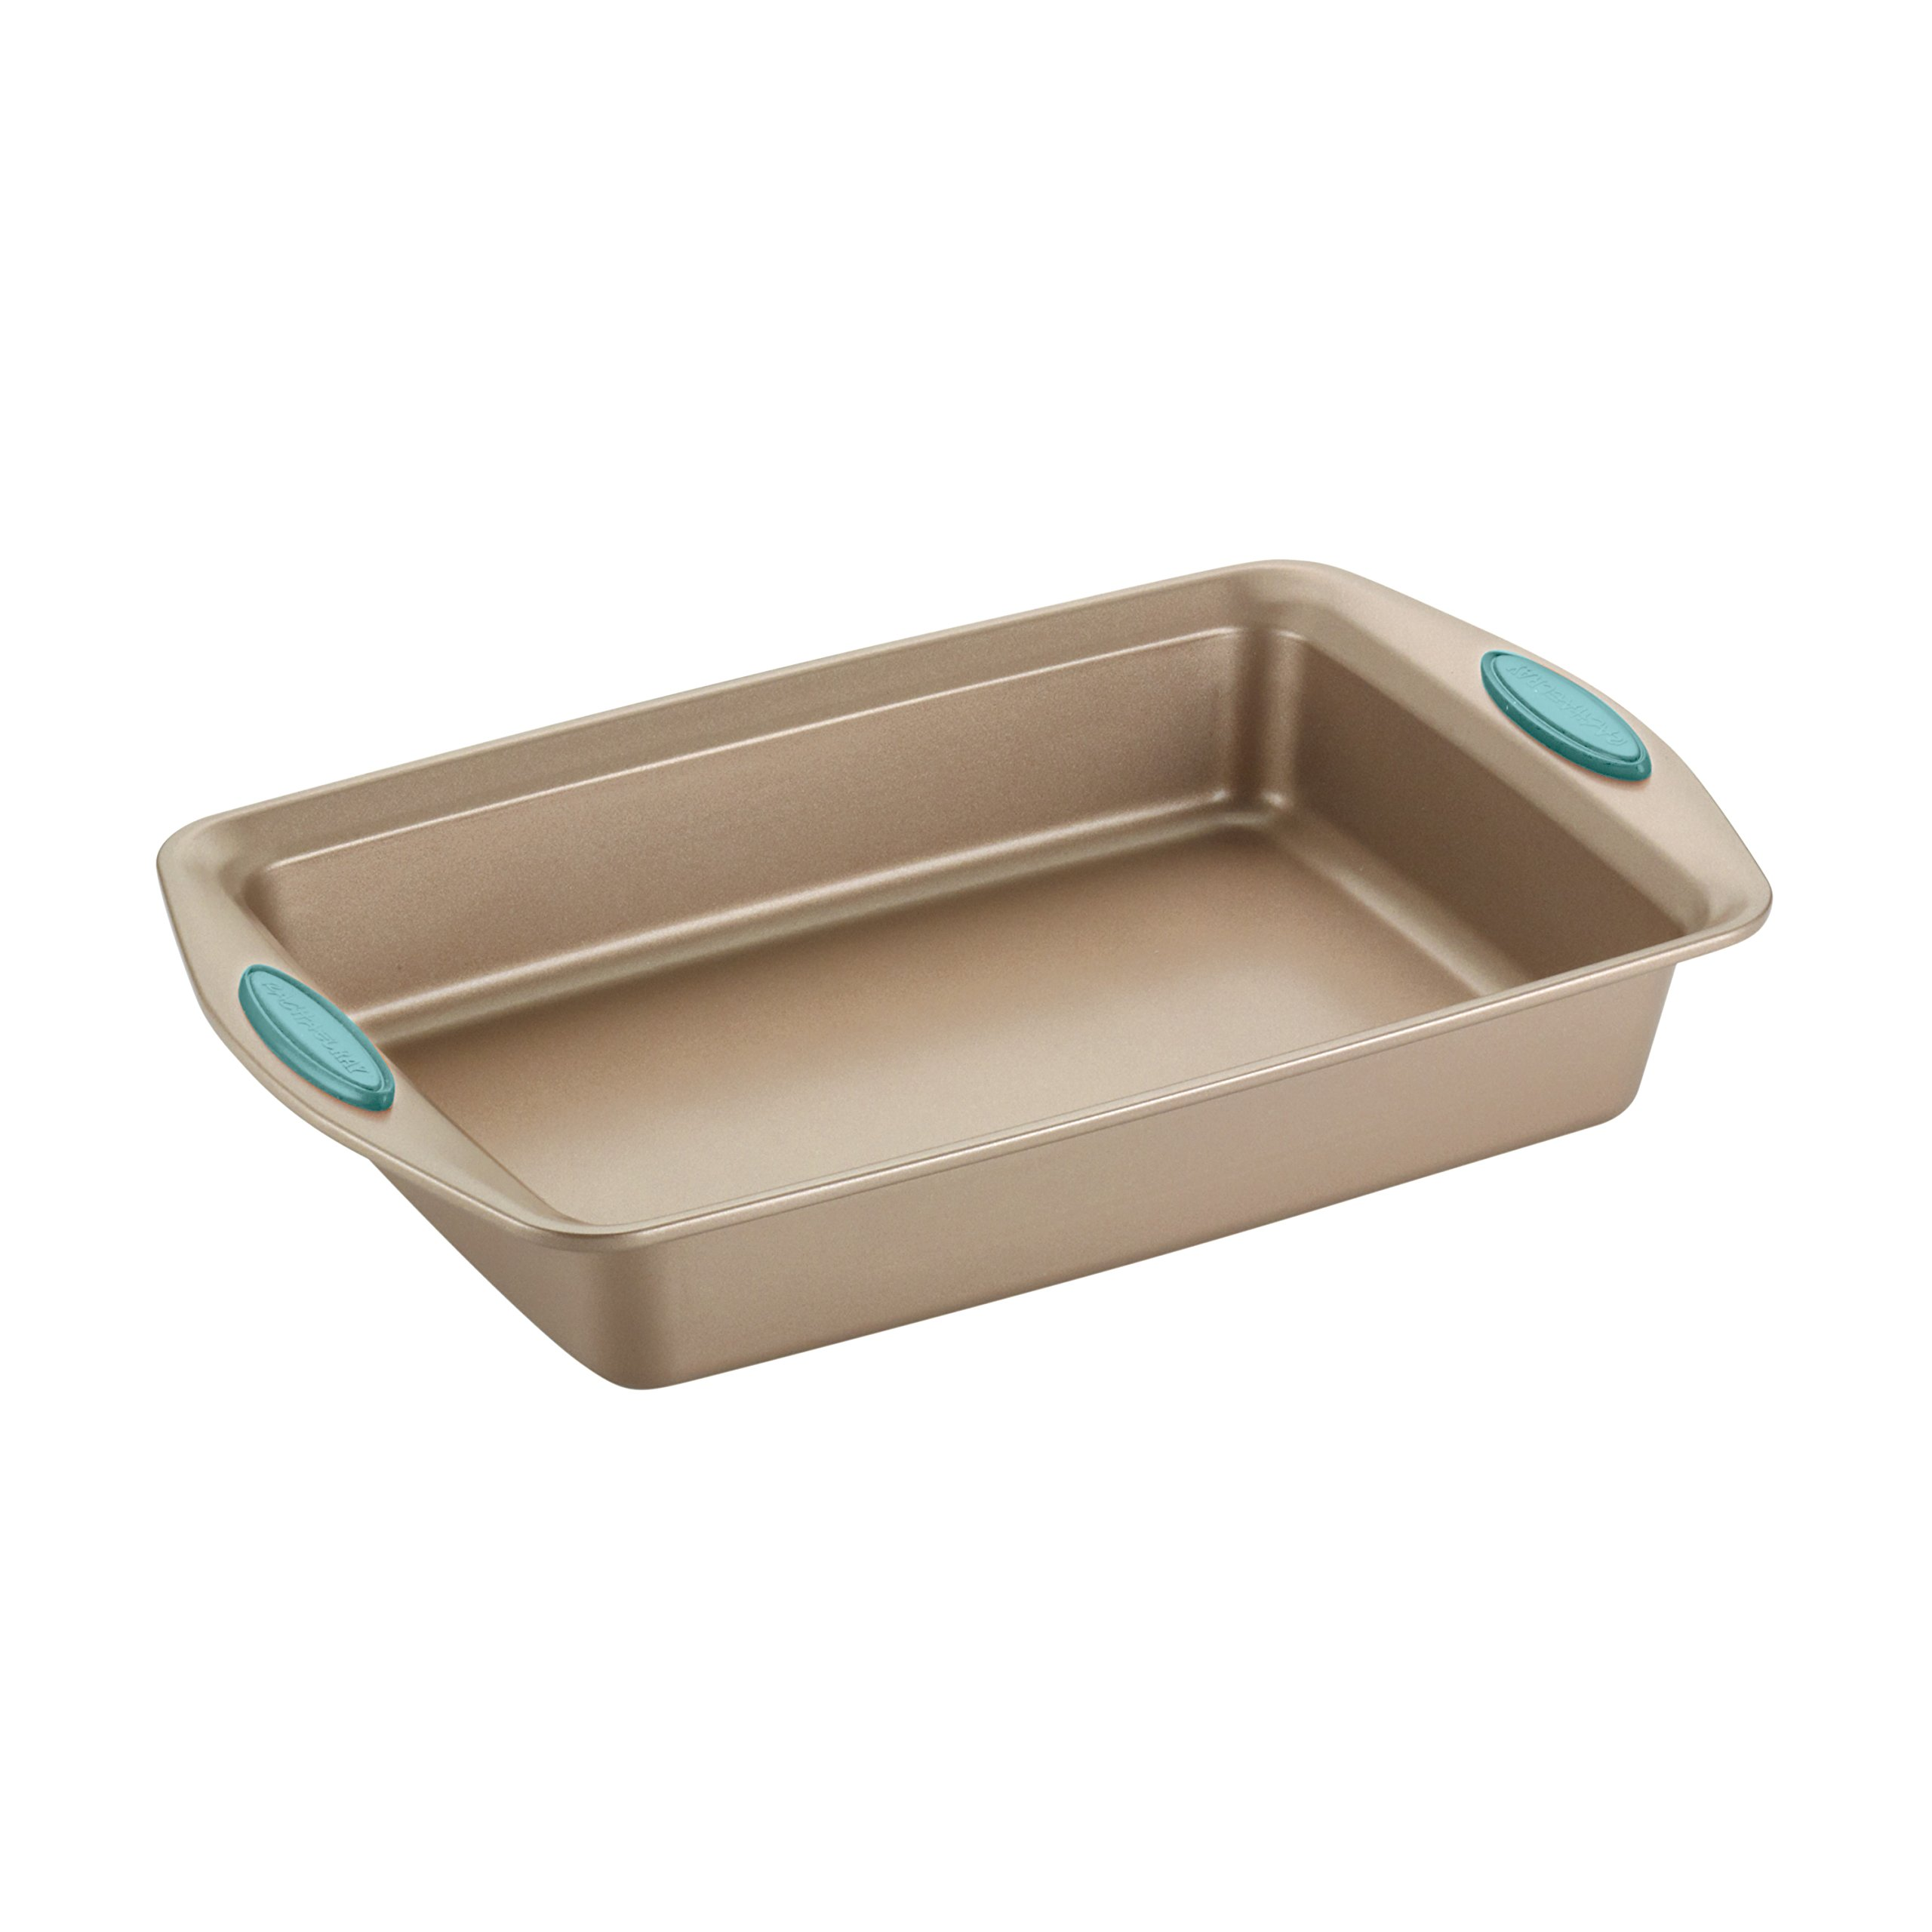 Rachael Ray Nonstick Bakeware 5-Piece Set, Latte Brown with Agave Blue Handle Grips by Rachael Ray (Image #8)